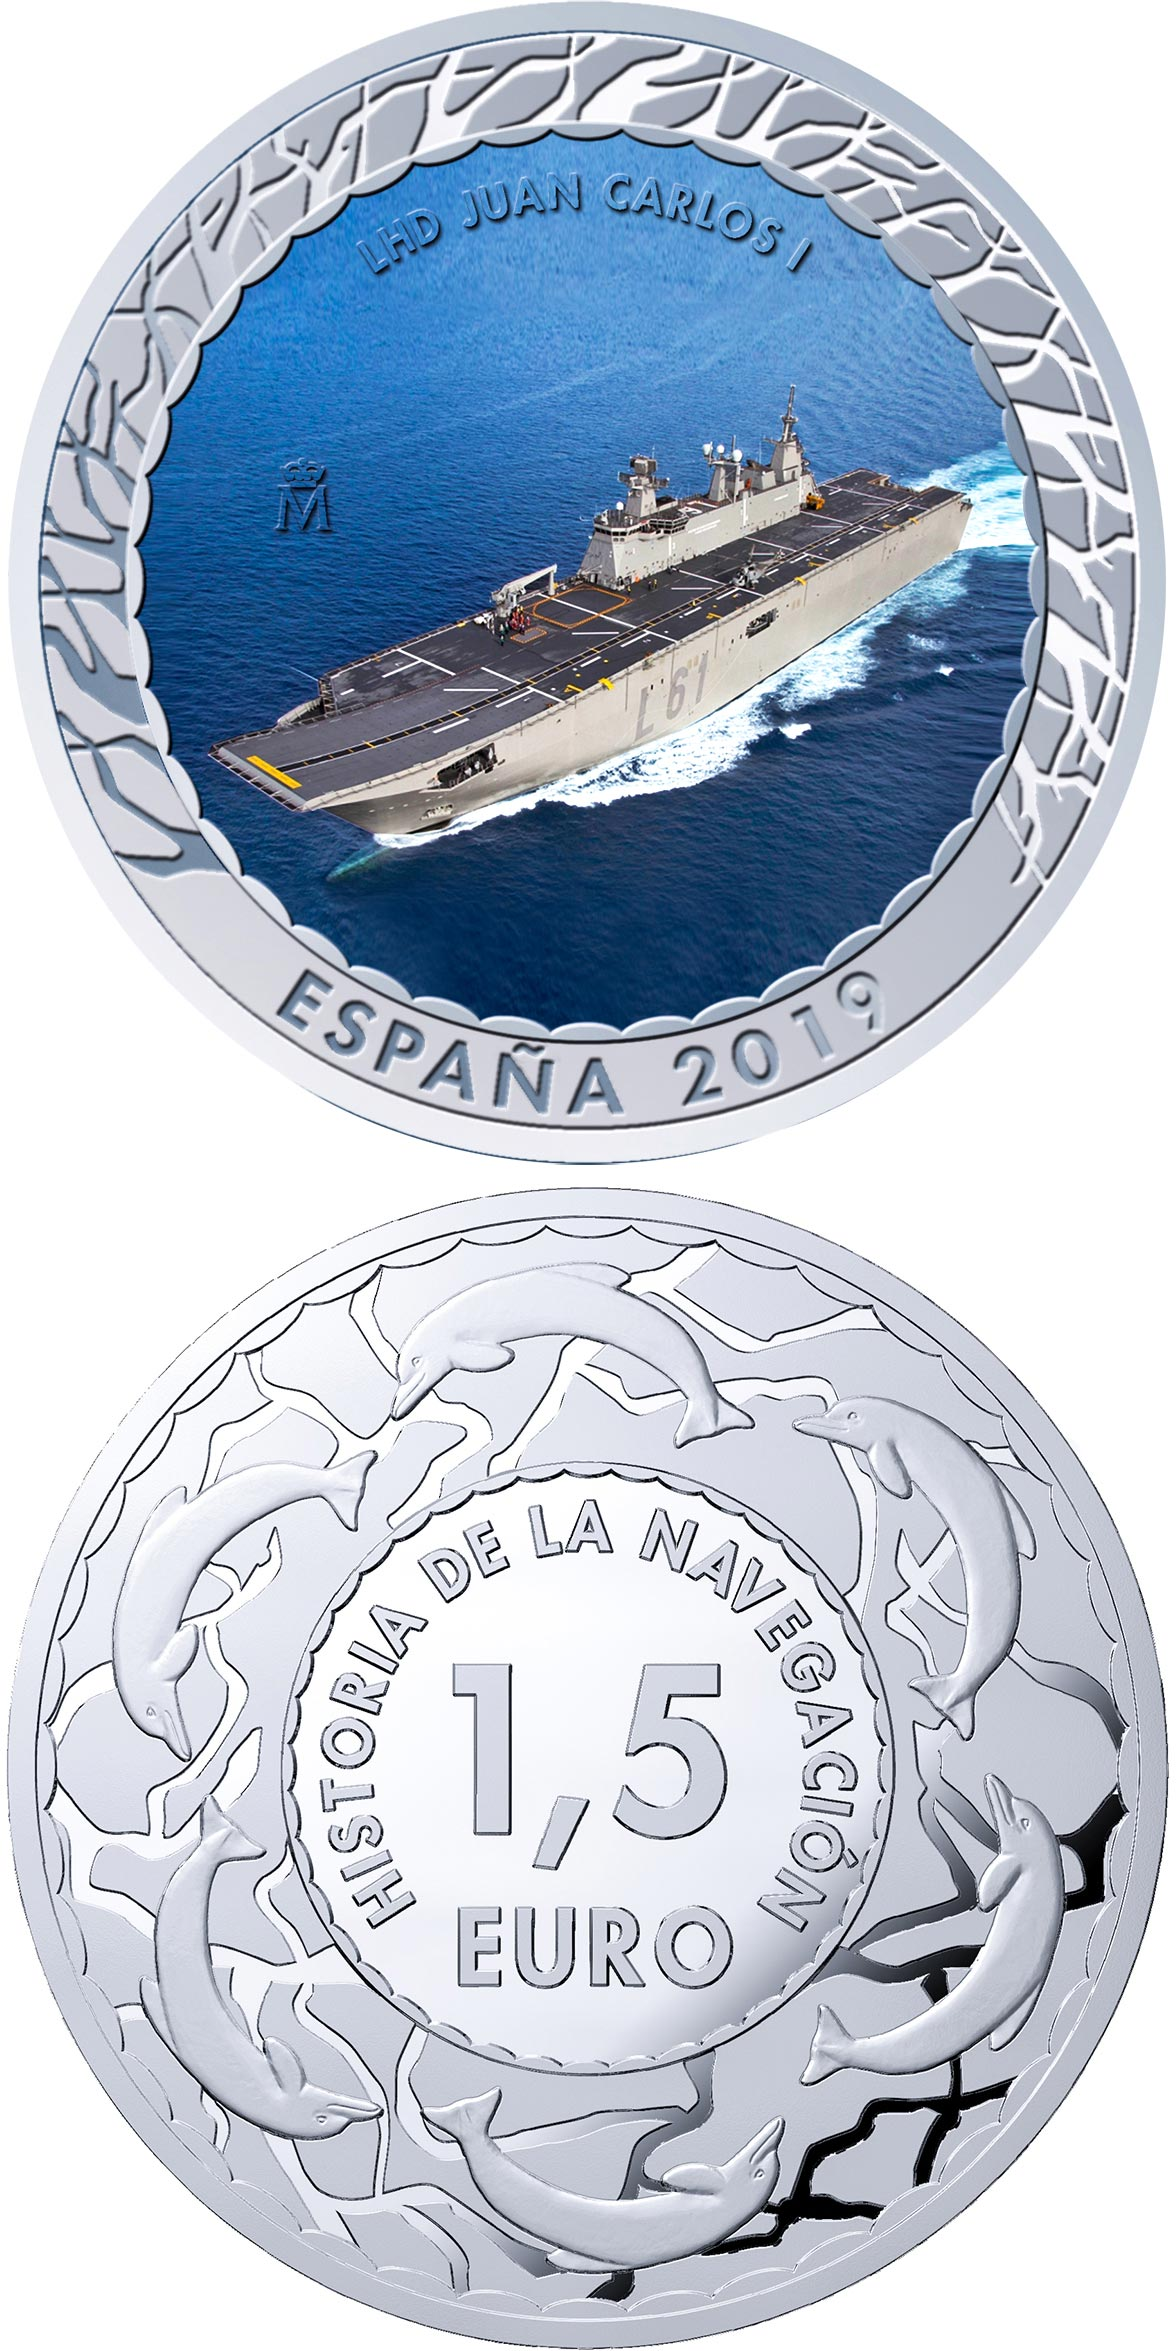 Image of 1.5 euro coin - LHD Juan Carlos I | Spain 2019.  The Copper–Nickel (CuNi) coin is of BU quality.